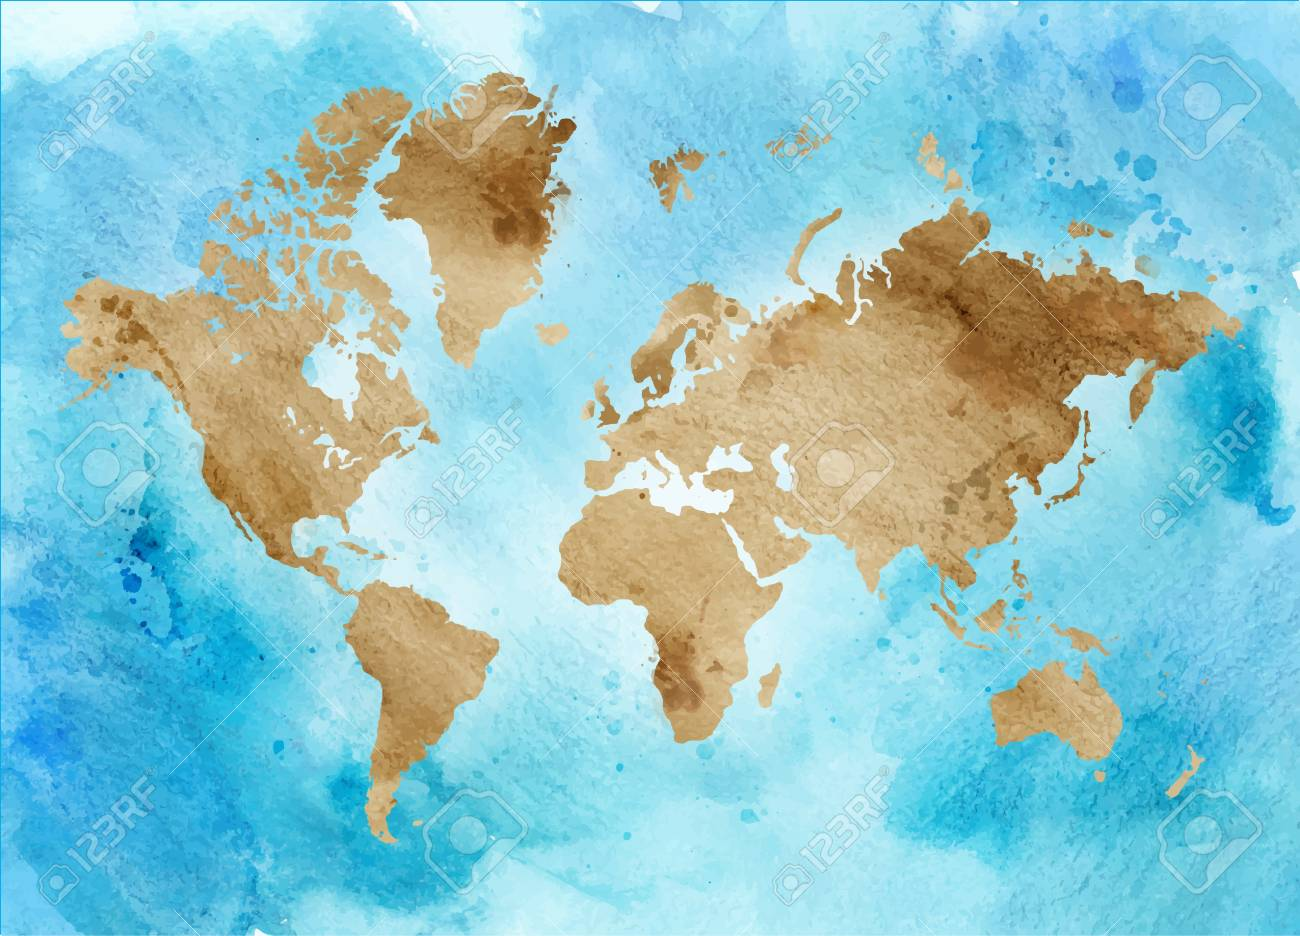 Vintage map of the world on a blue background. horizontal Watercolor illustration. - 73652894